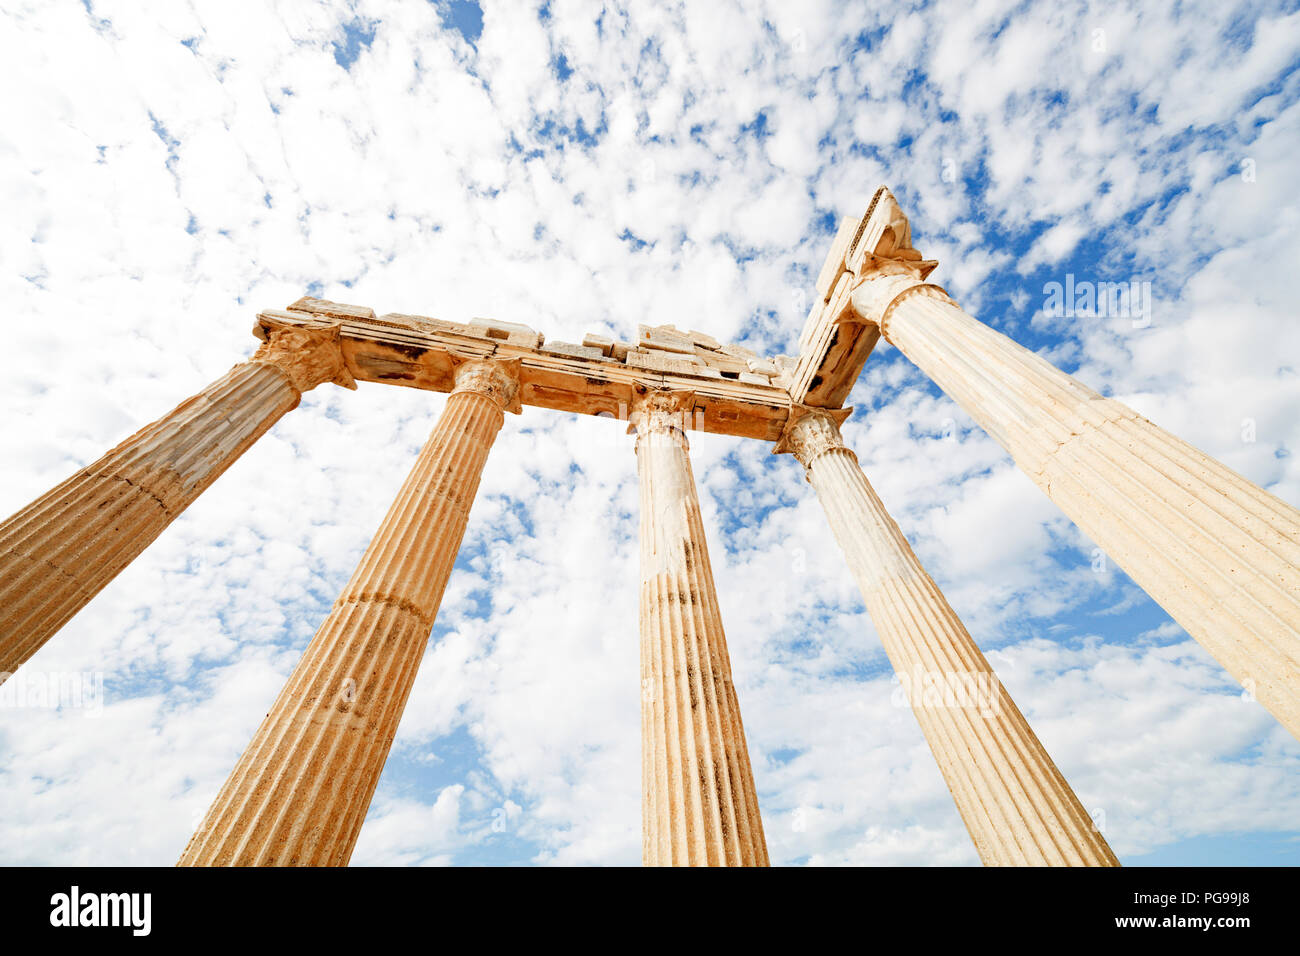 Columns of an ancient Greek temple. - Stock Image